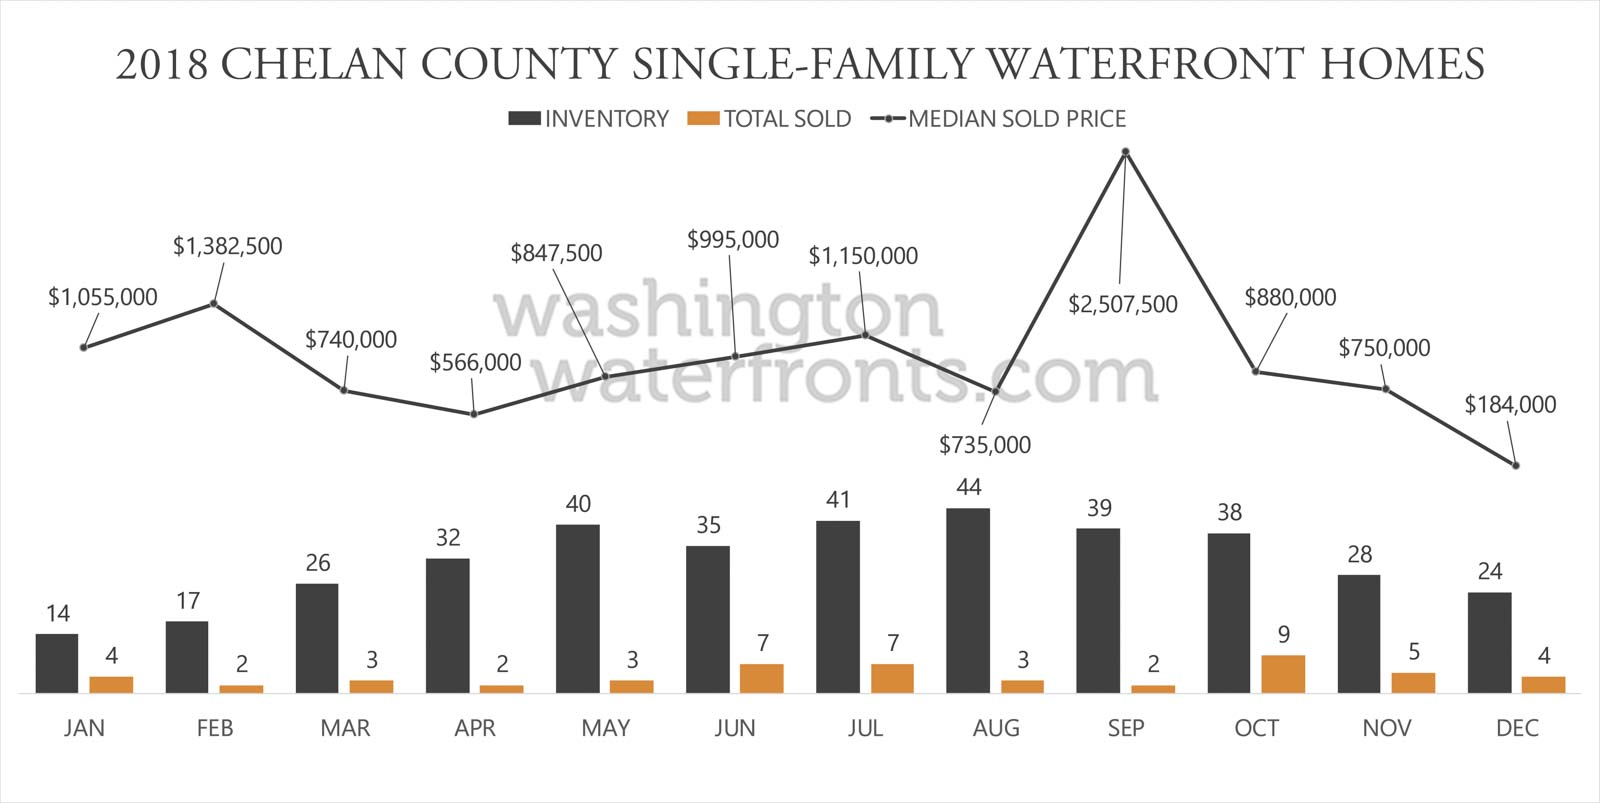 Chelan County Waterfront Inventory